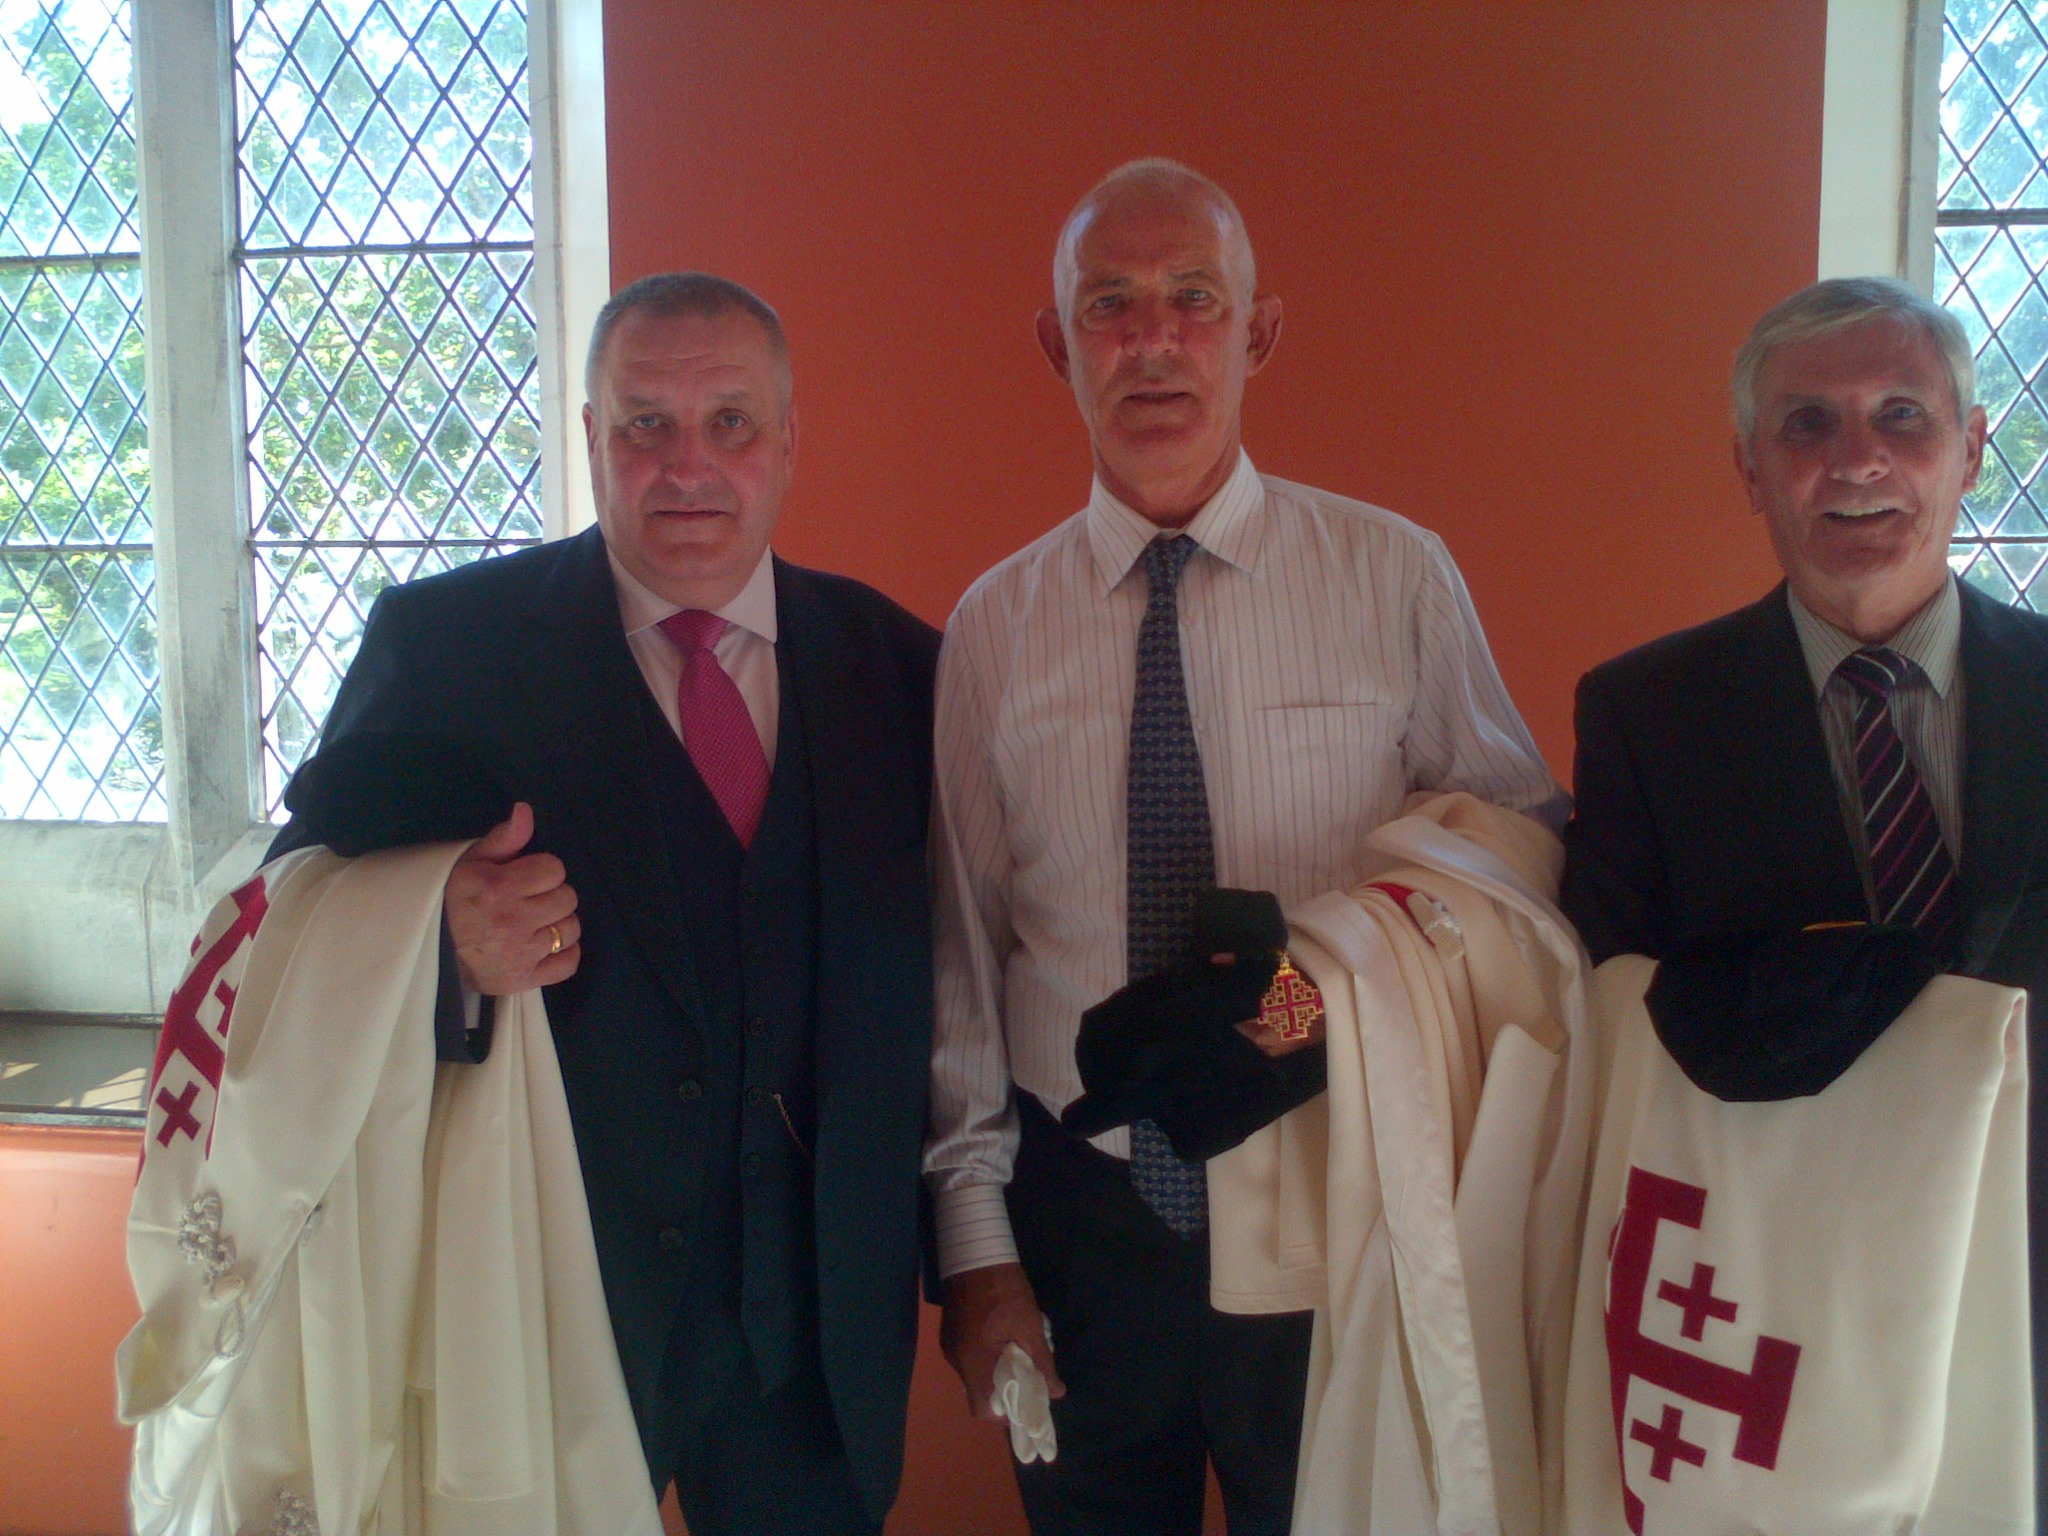 Master of Postulants Comdt F Hearms with P OSullivan T OKeeffe